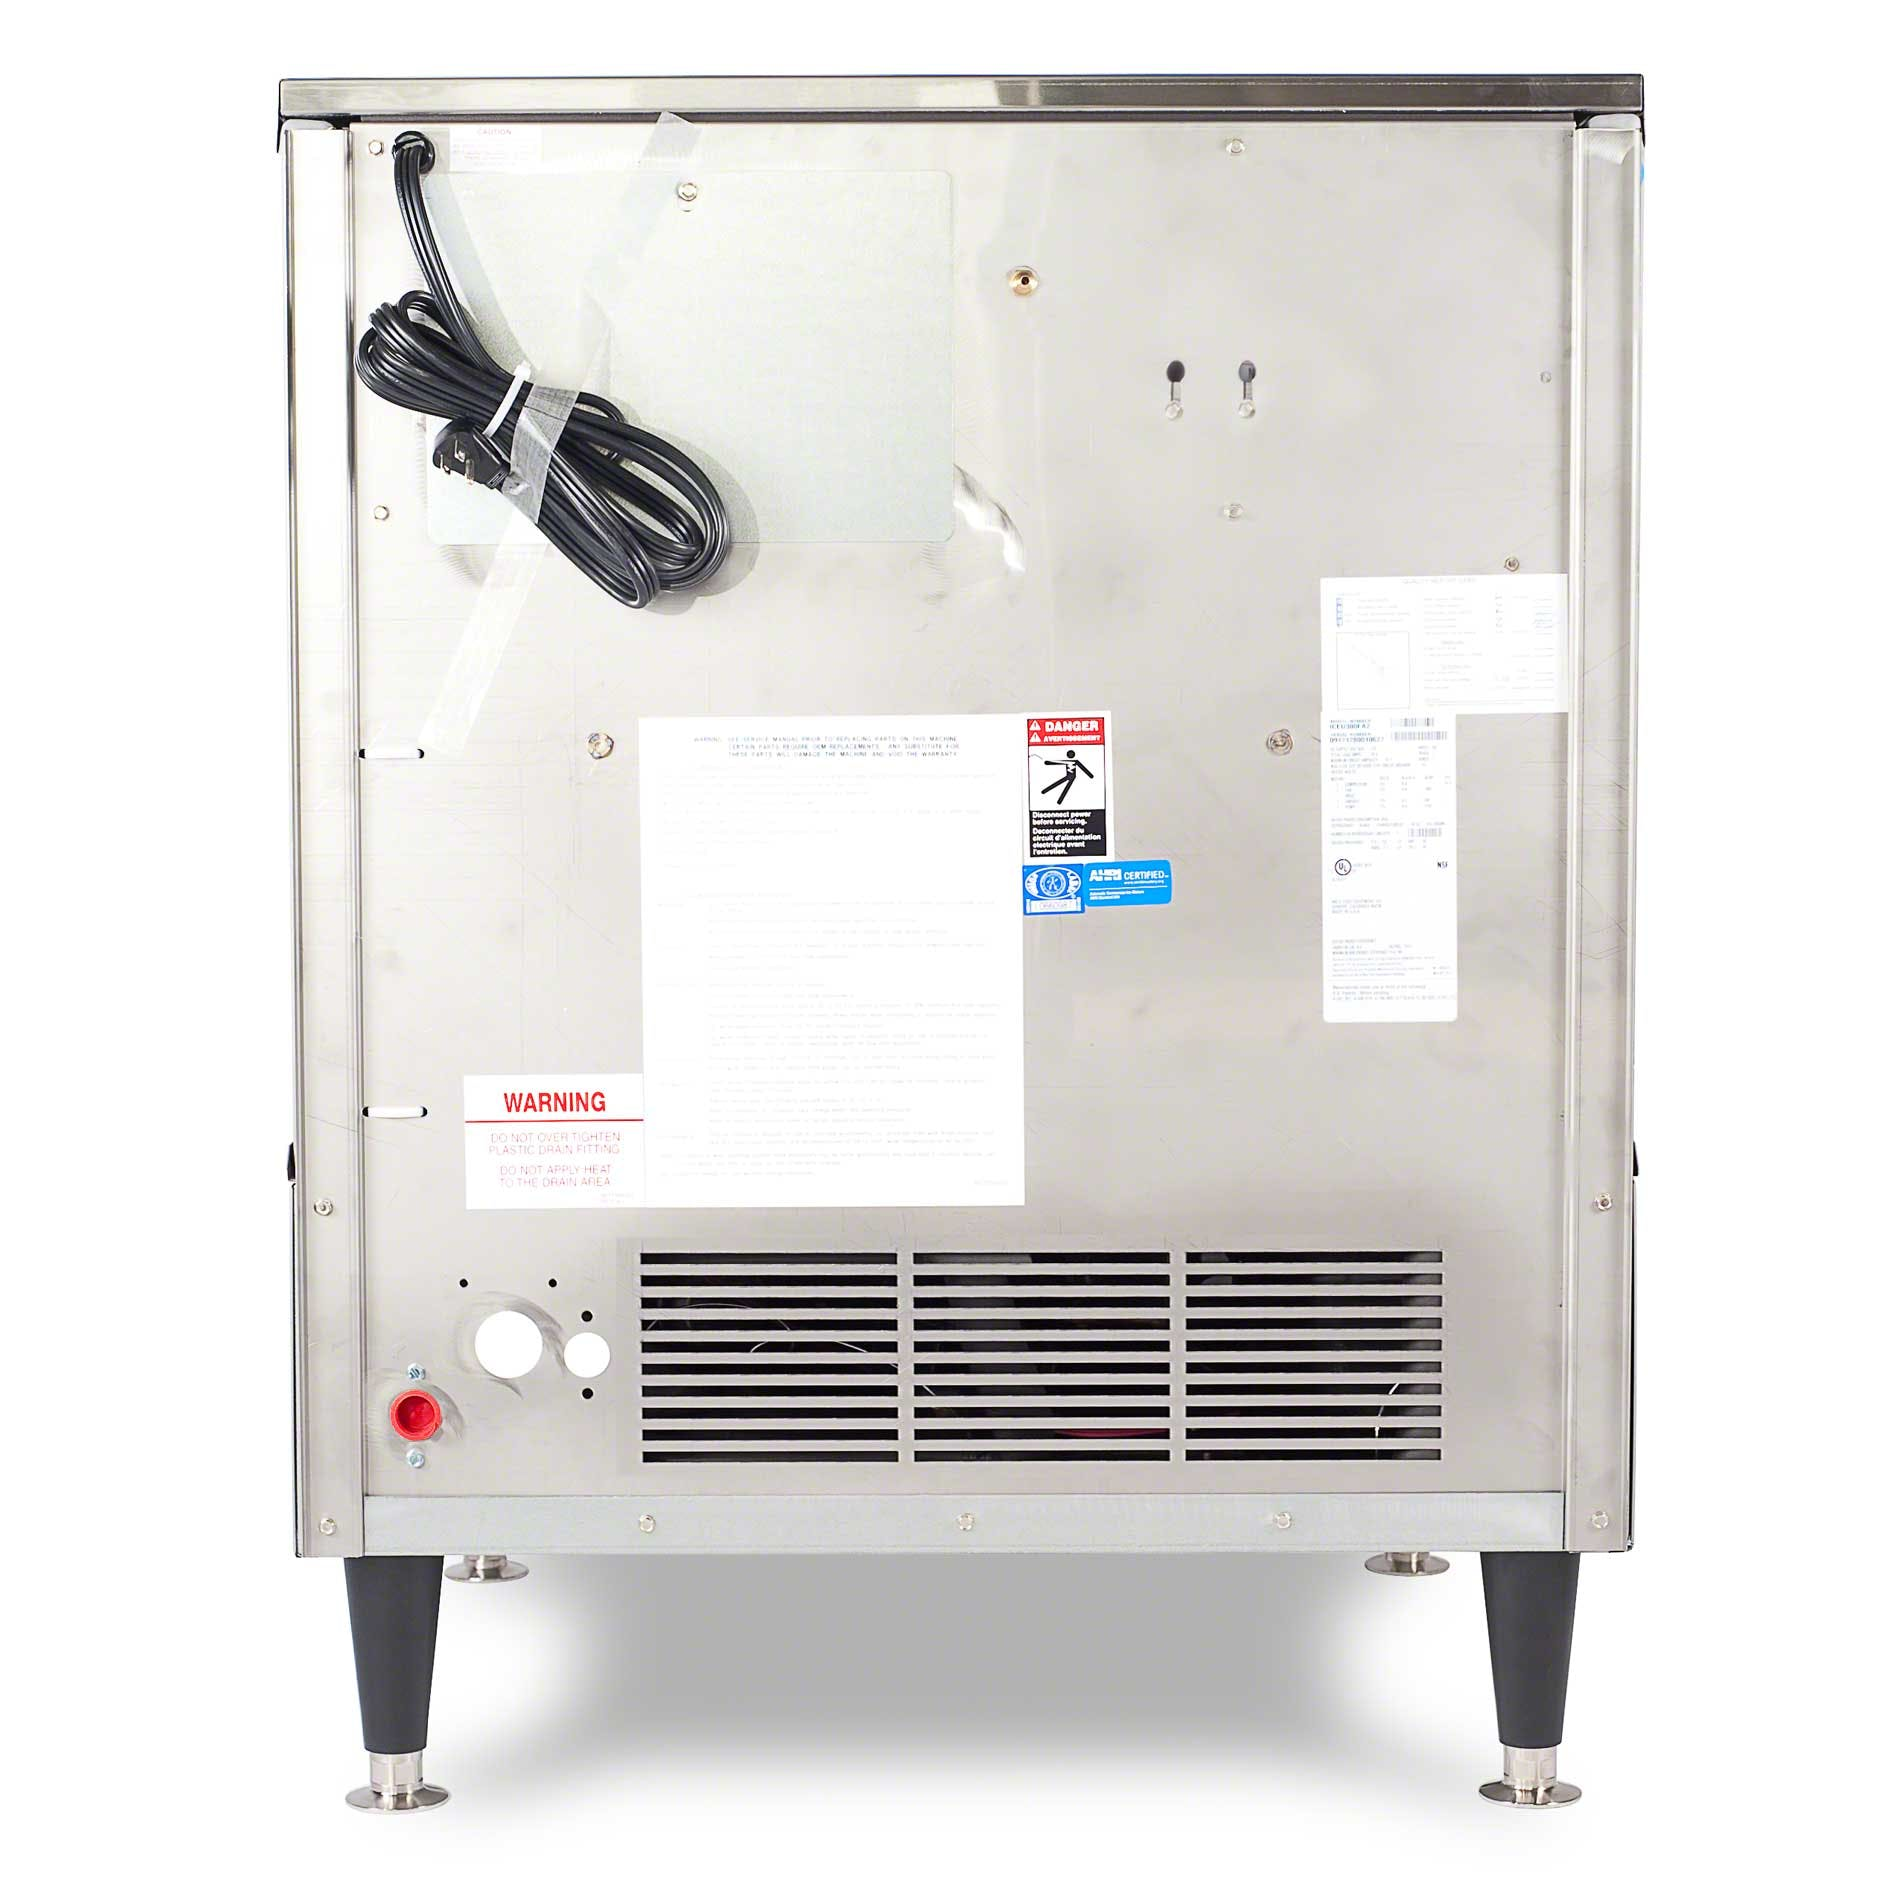 Ice-O-Matic - ICEU300HW 356 lb Self-Contained Half Cube Ice Machine Ice machine sold by Food Service Warehouse